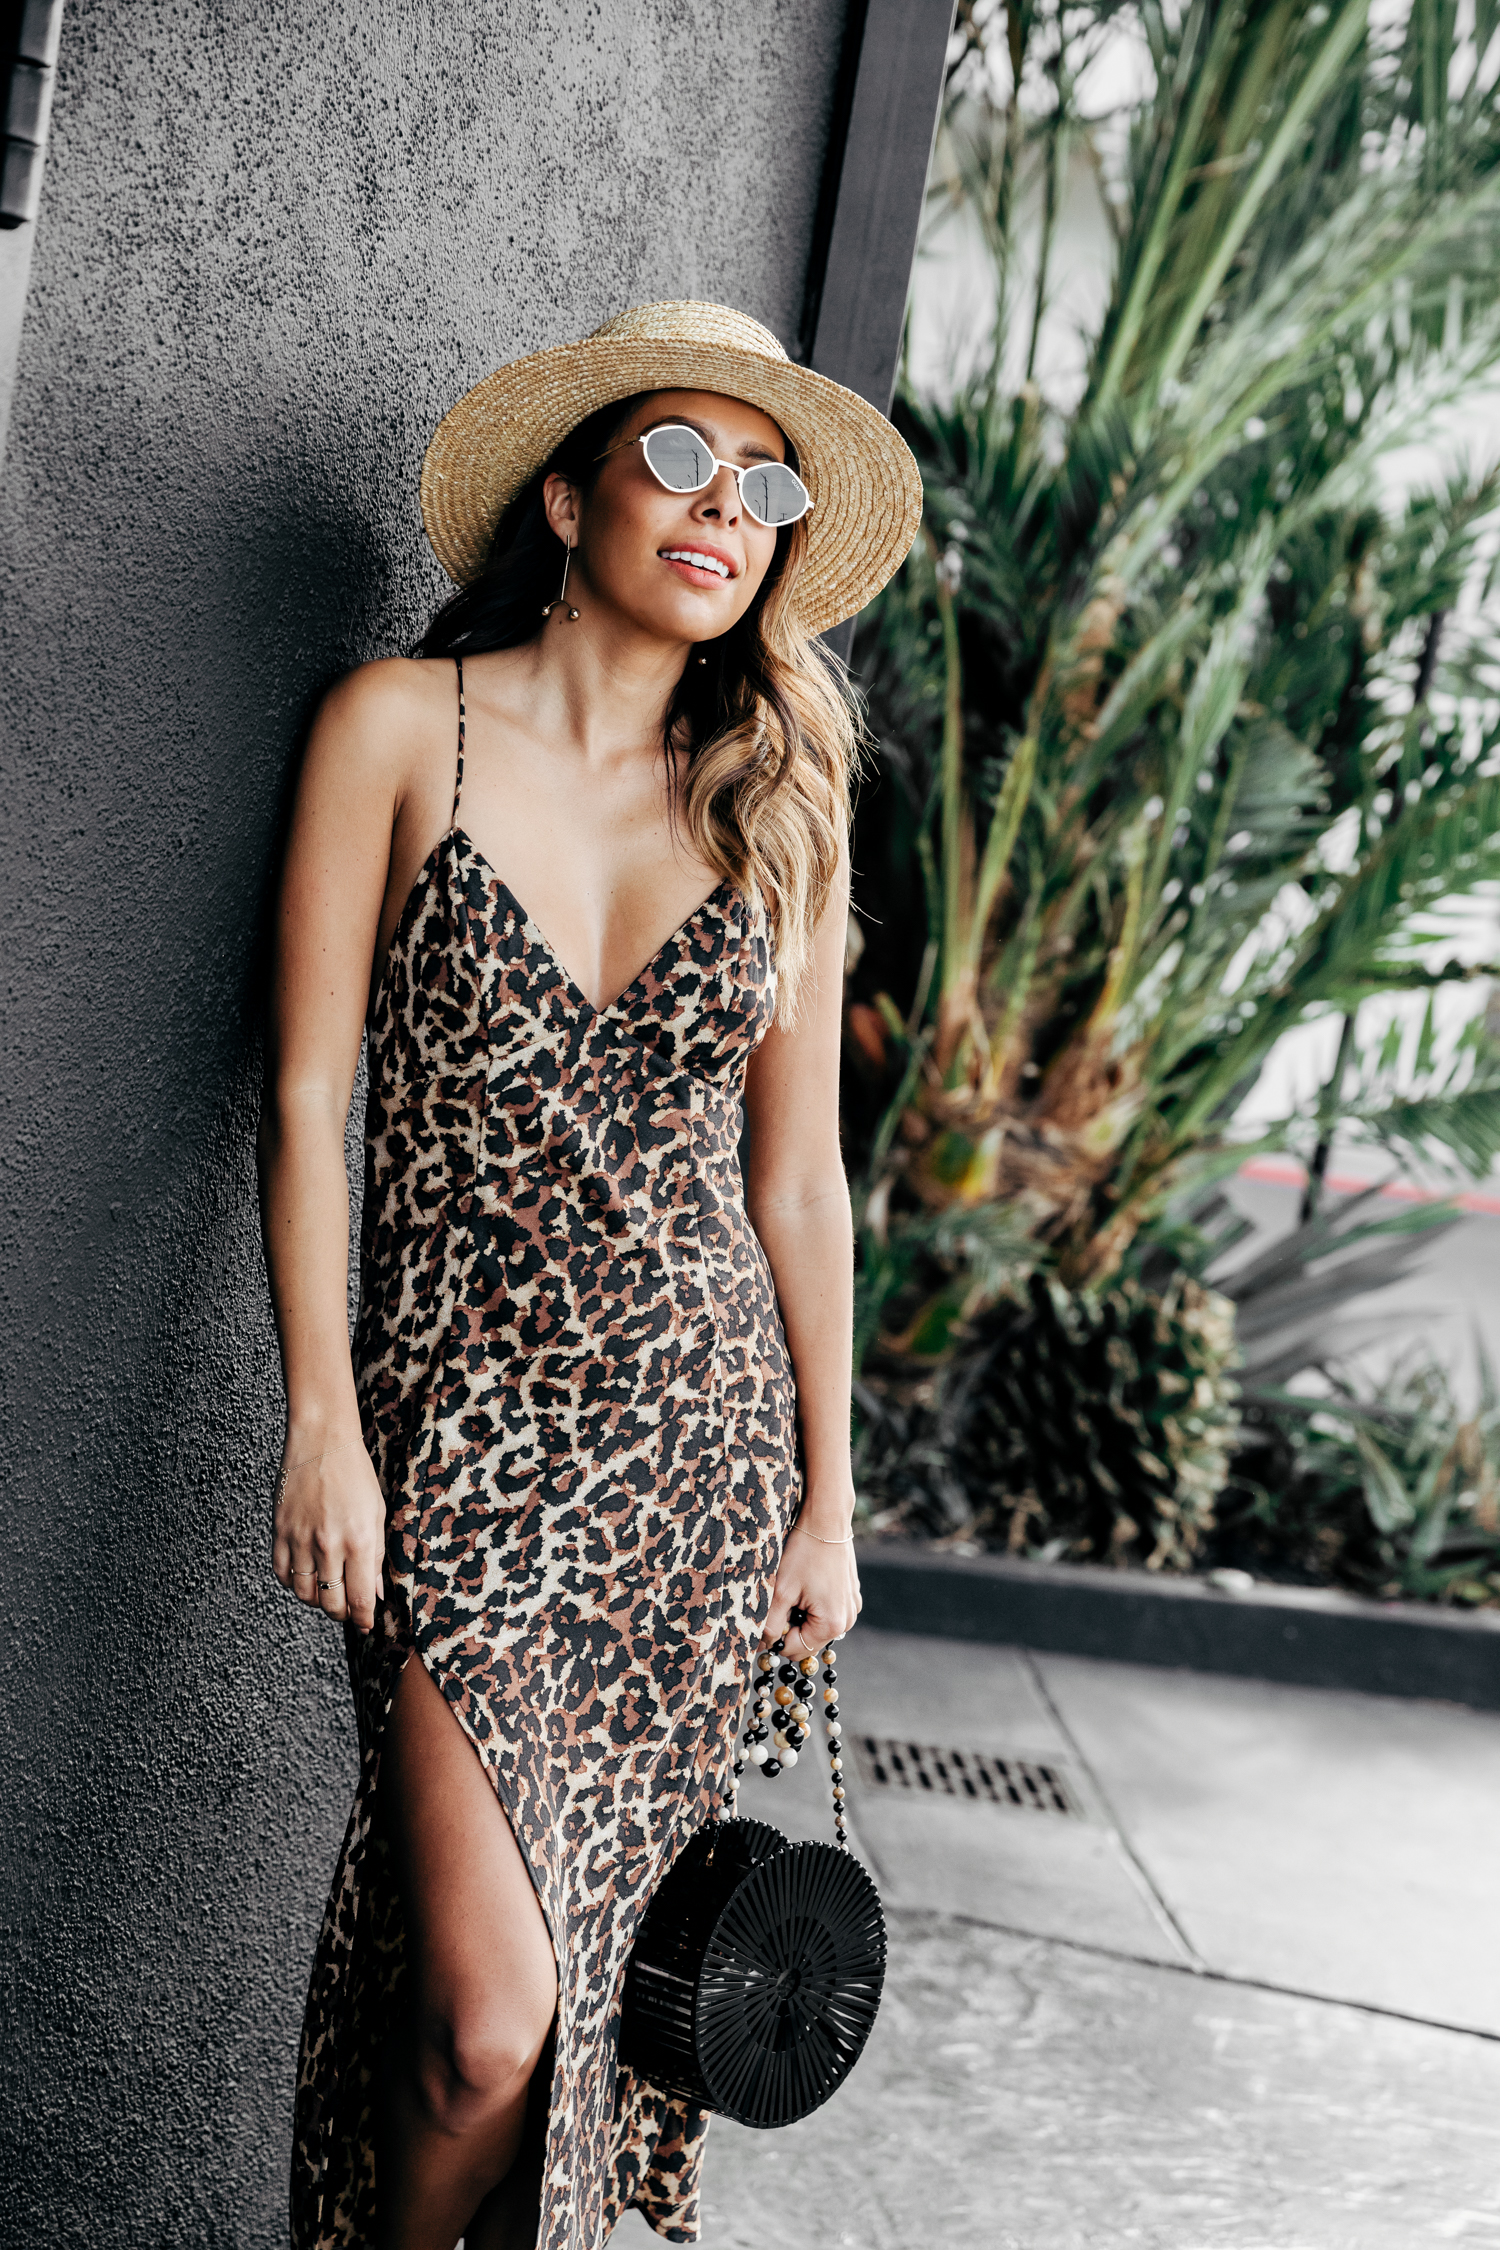 Everyday Pursuit in Endless Summer - easy leopard slip dress